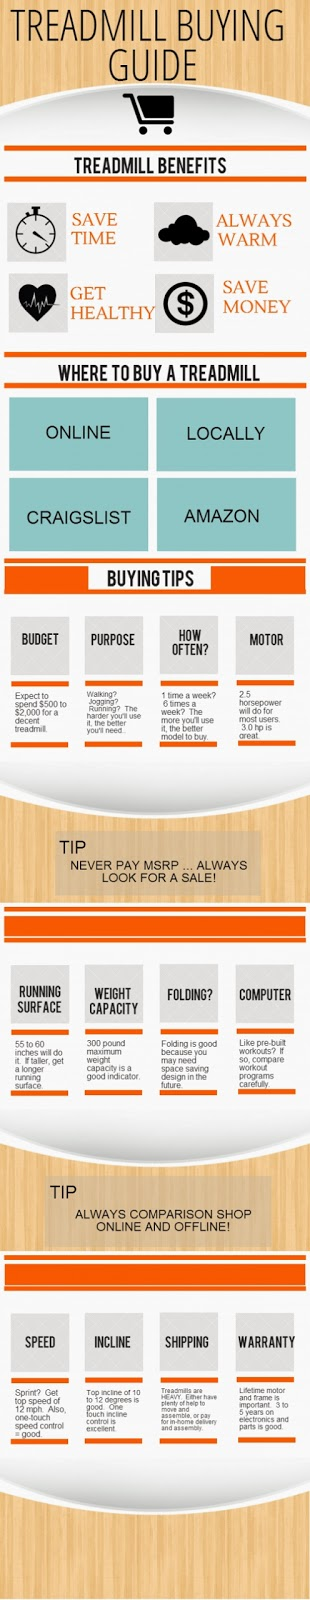 BUY TREADMILL ONLINE - INFOGRAPHIC GUIDE